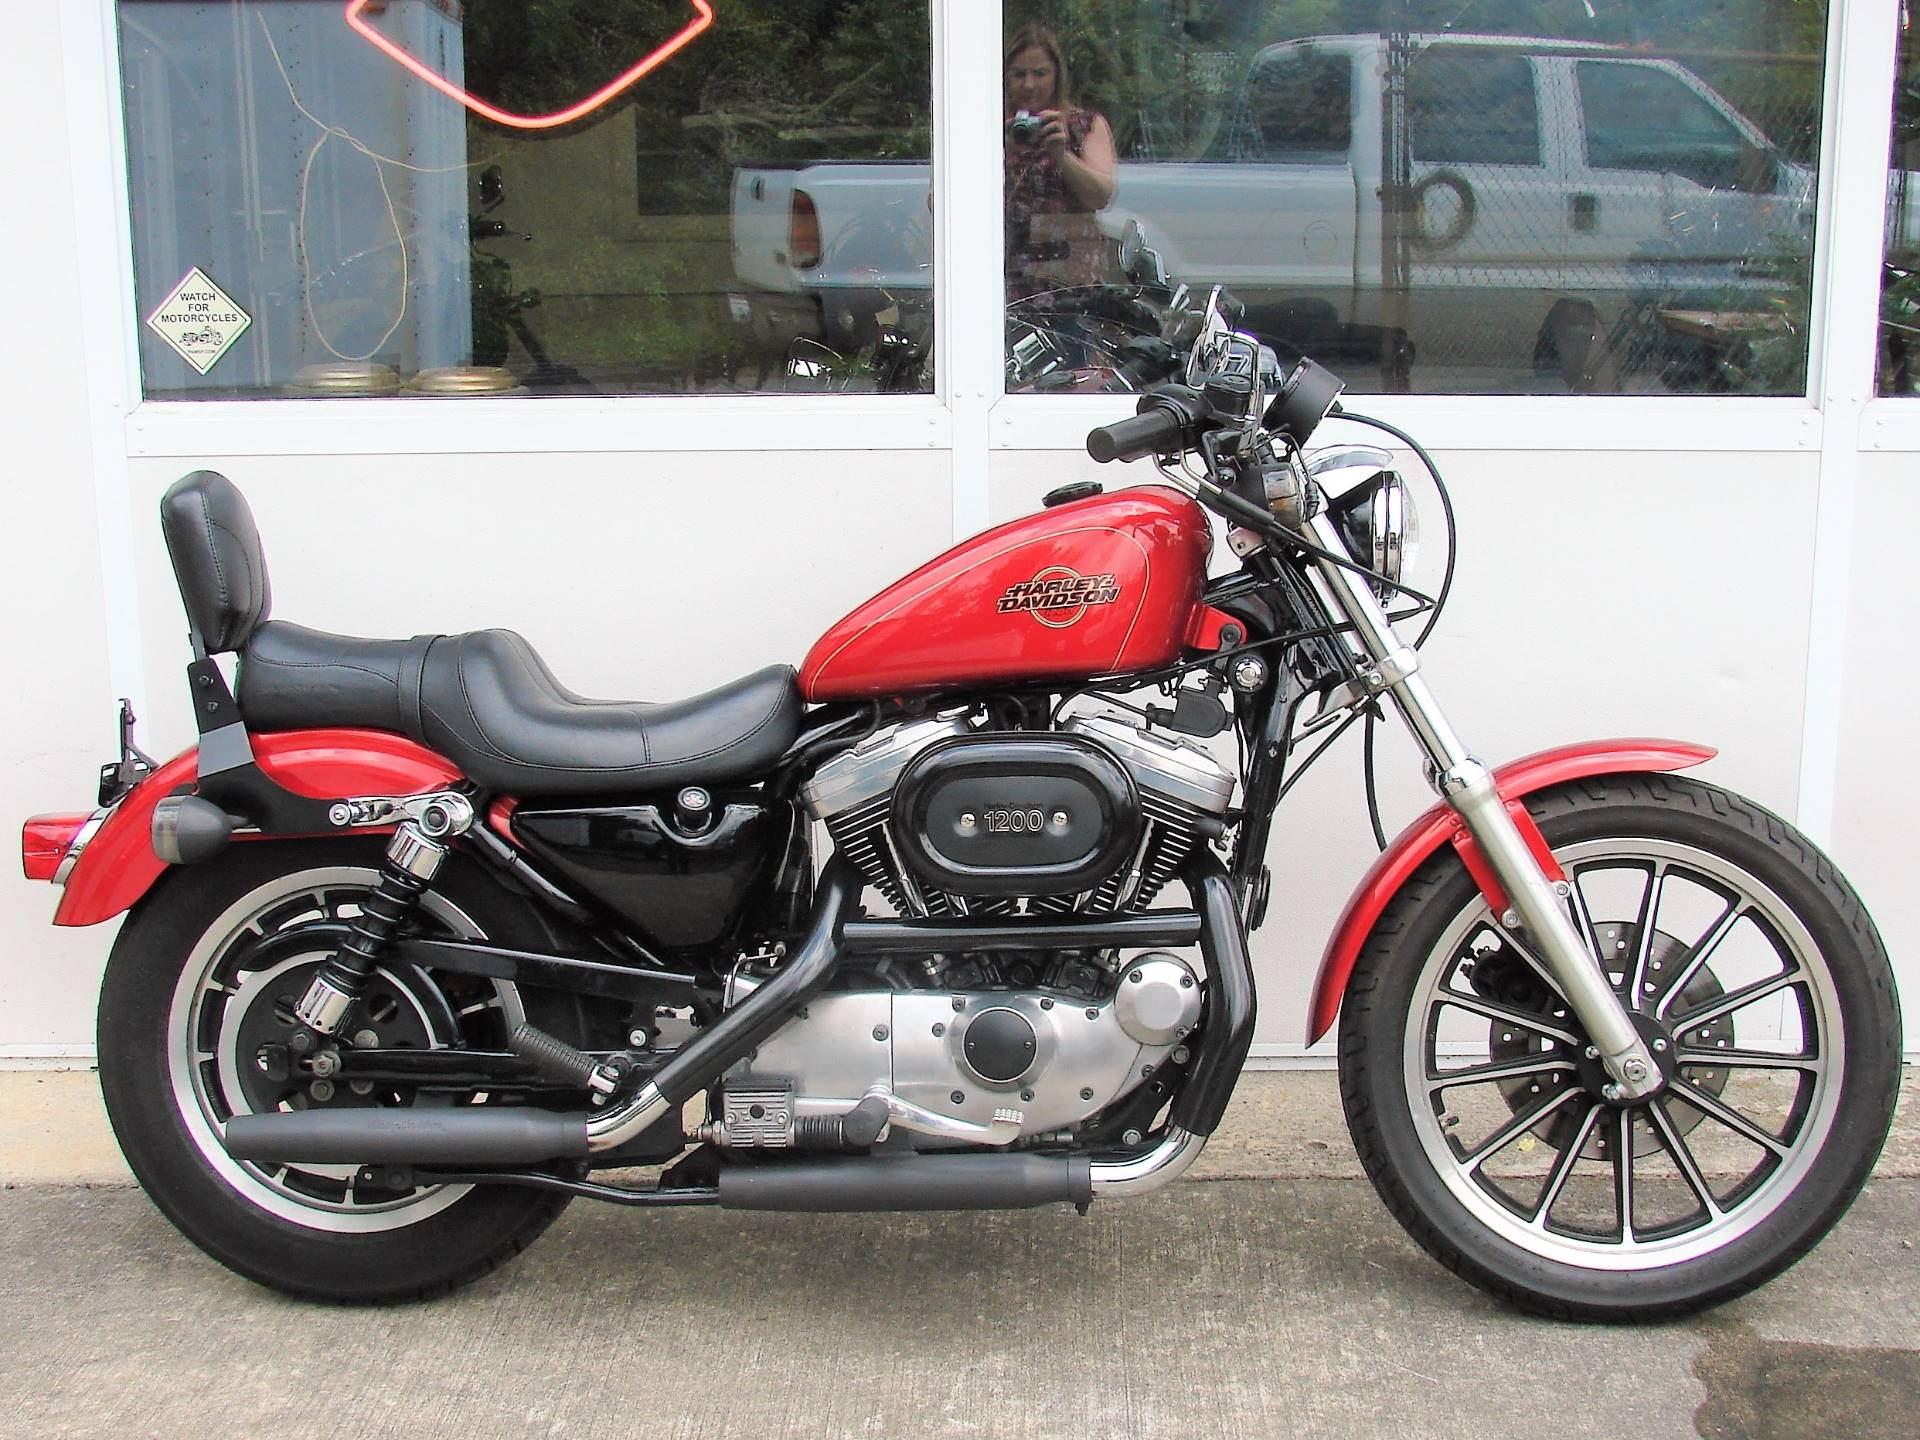 1996 Harley-Davidson XL 1200 Sportster  (Runs Good!) in Williamstown, New Jersey - Photo 1